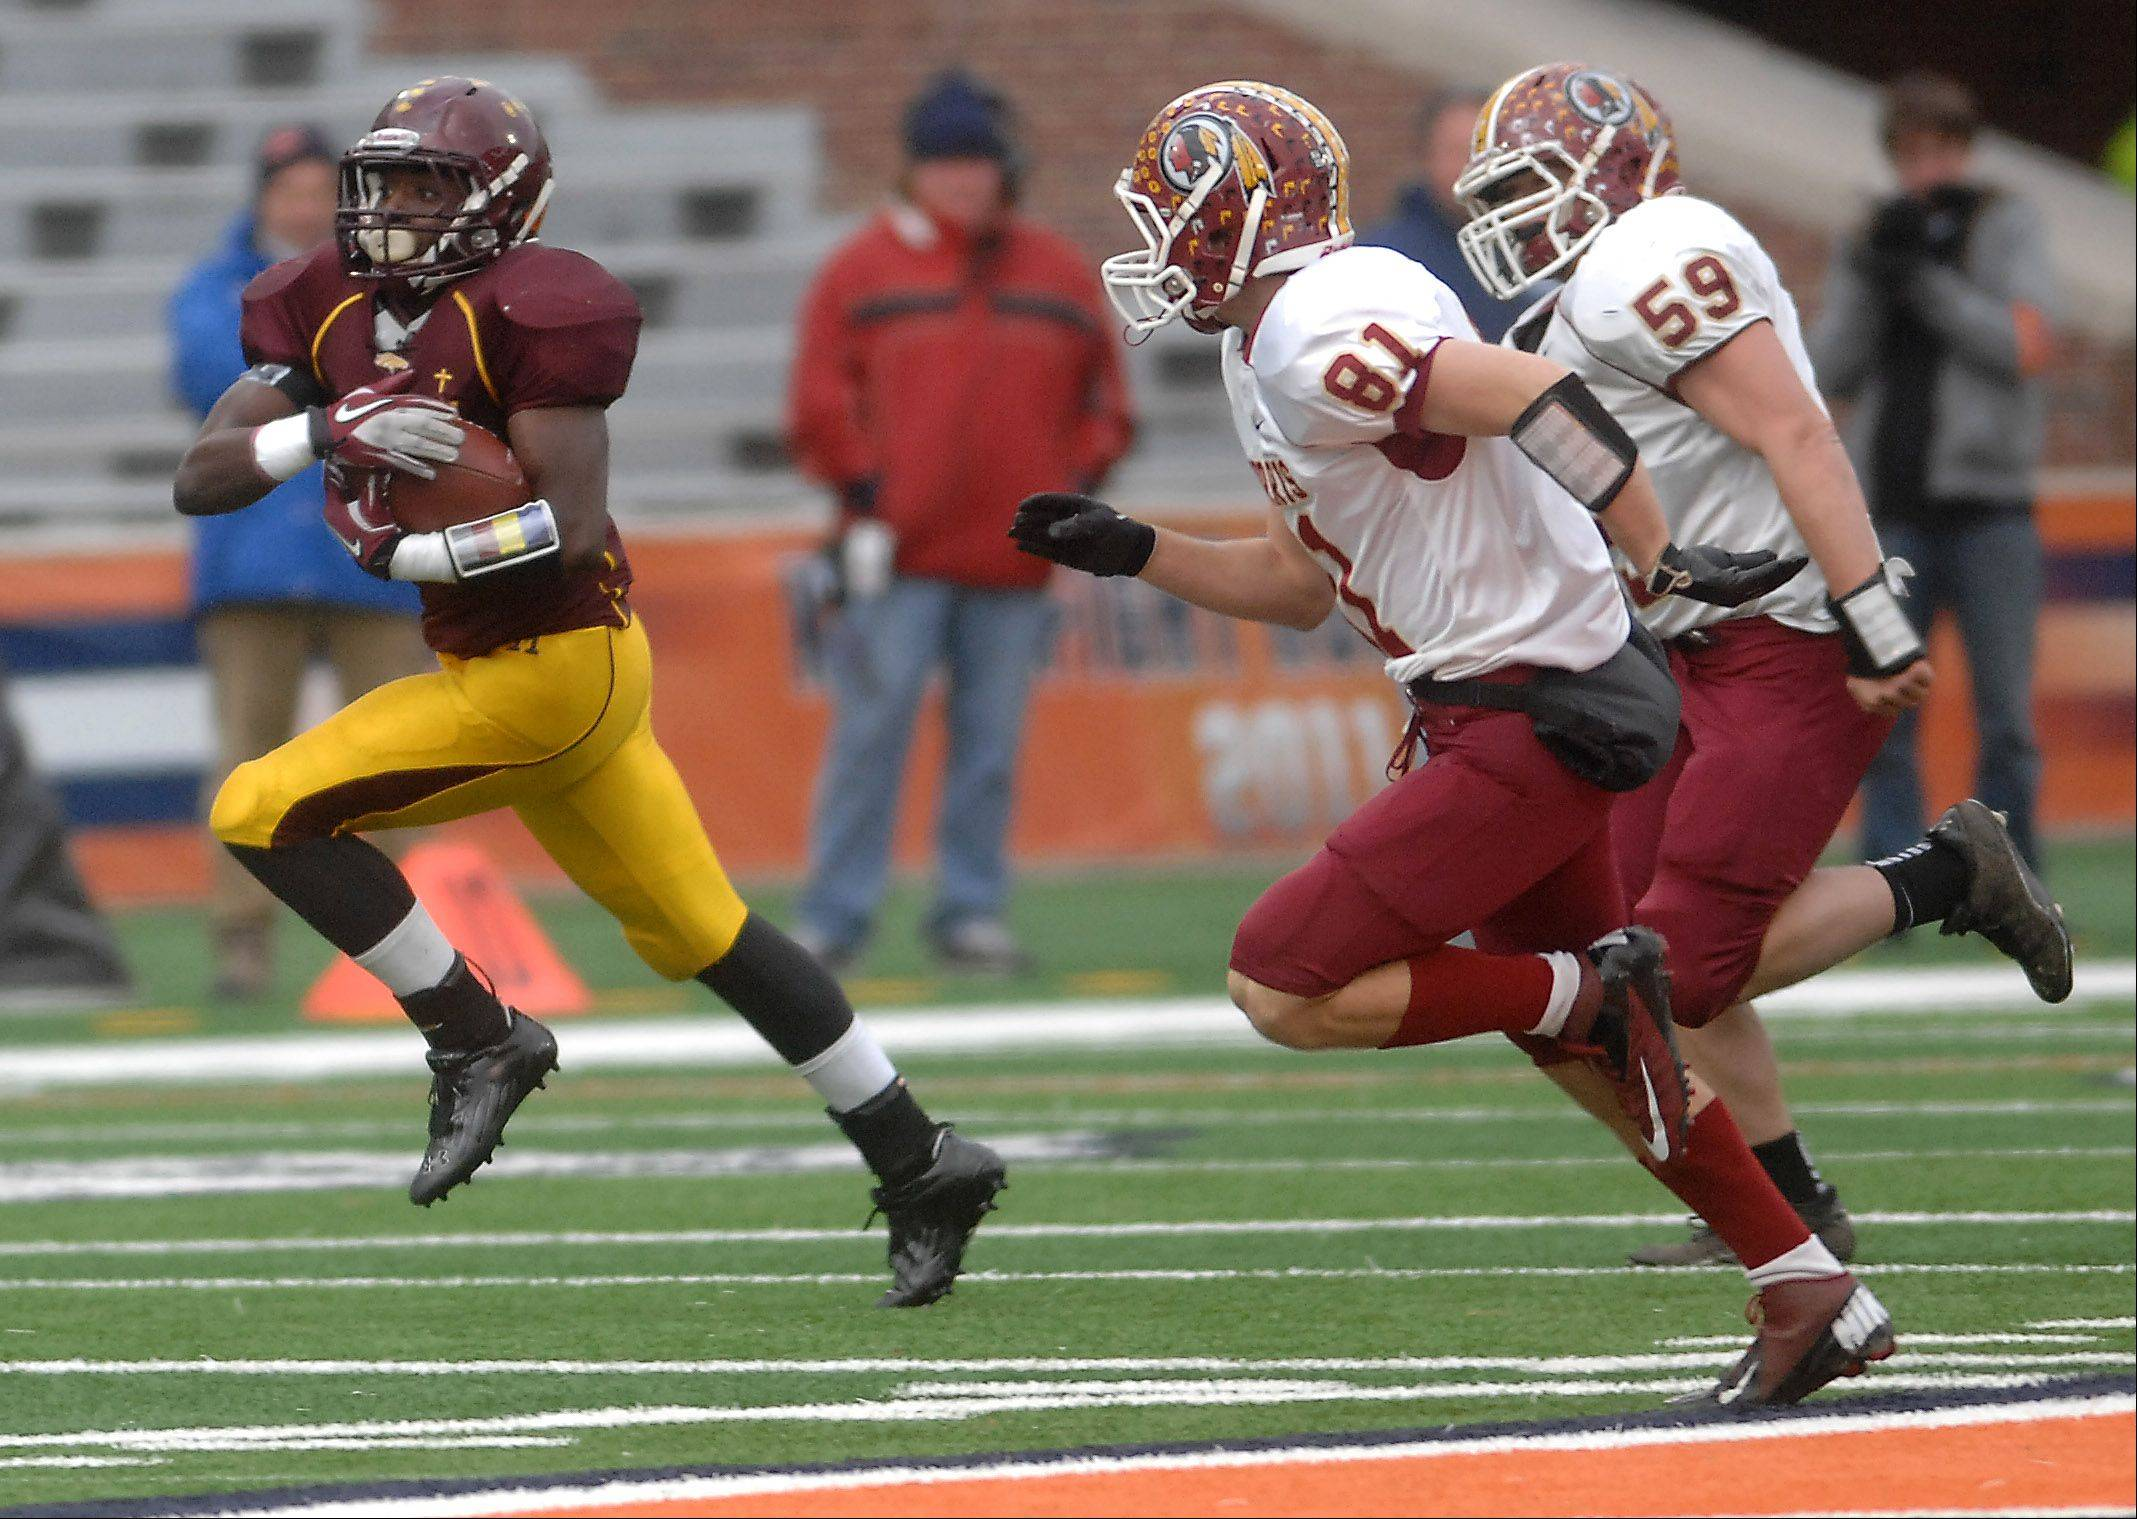 Montini running back Dimitri Taylor (23) breaks free from the Morris pursuit for a 73-yard touchdown run during Saturday's Class 5A state title game at Memorial Stadium in Champaign.